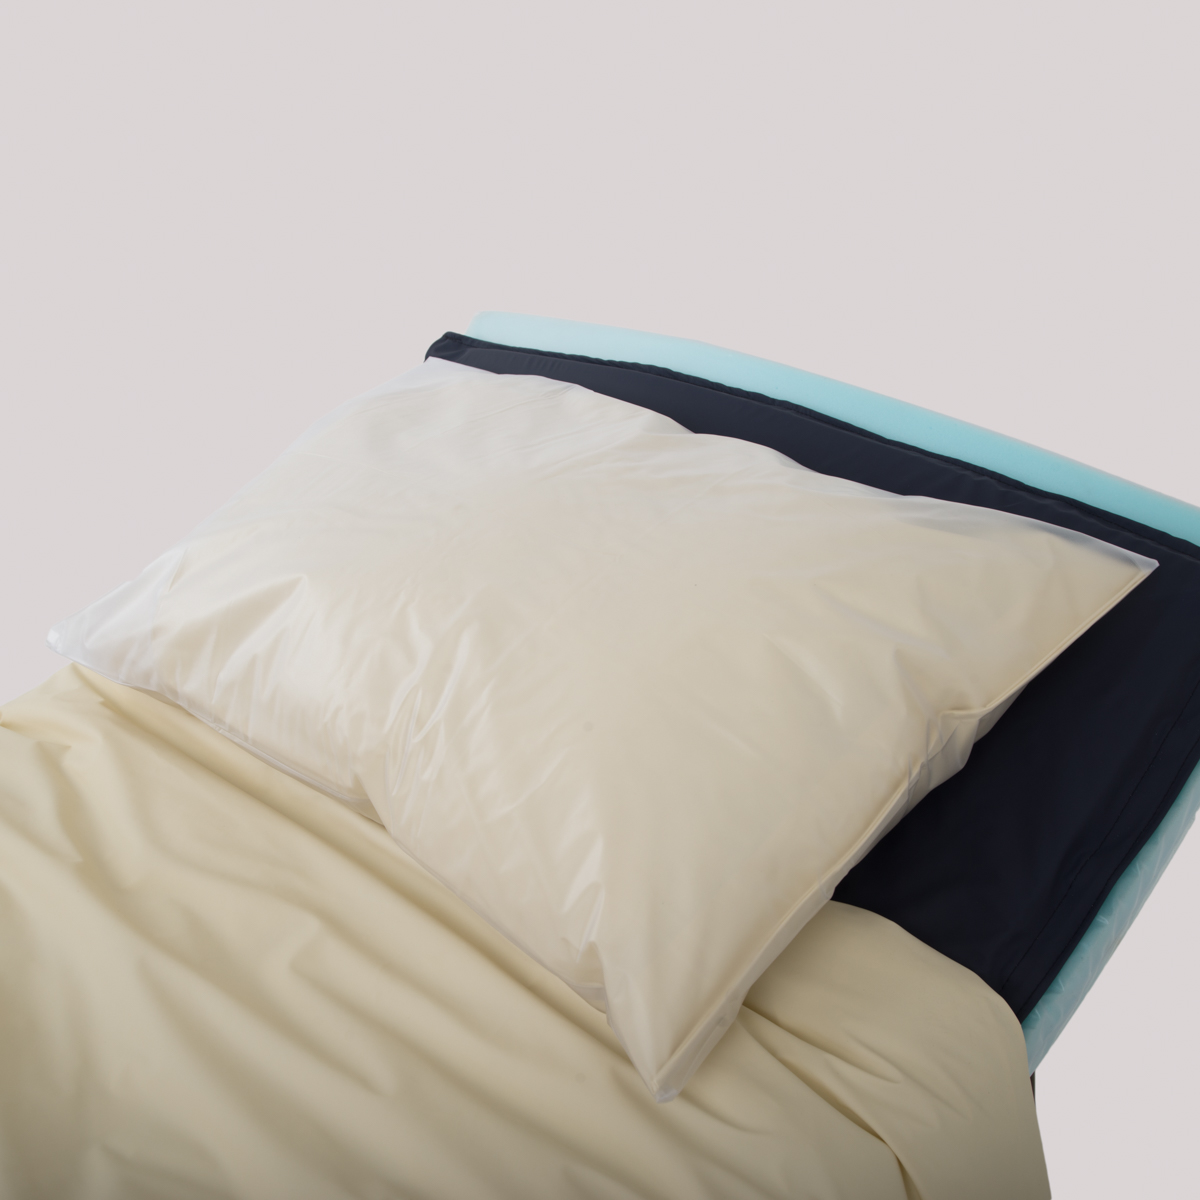 Antibacterial Medical Pillow and fire-retardent material, water-resistant